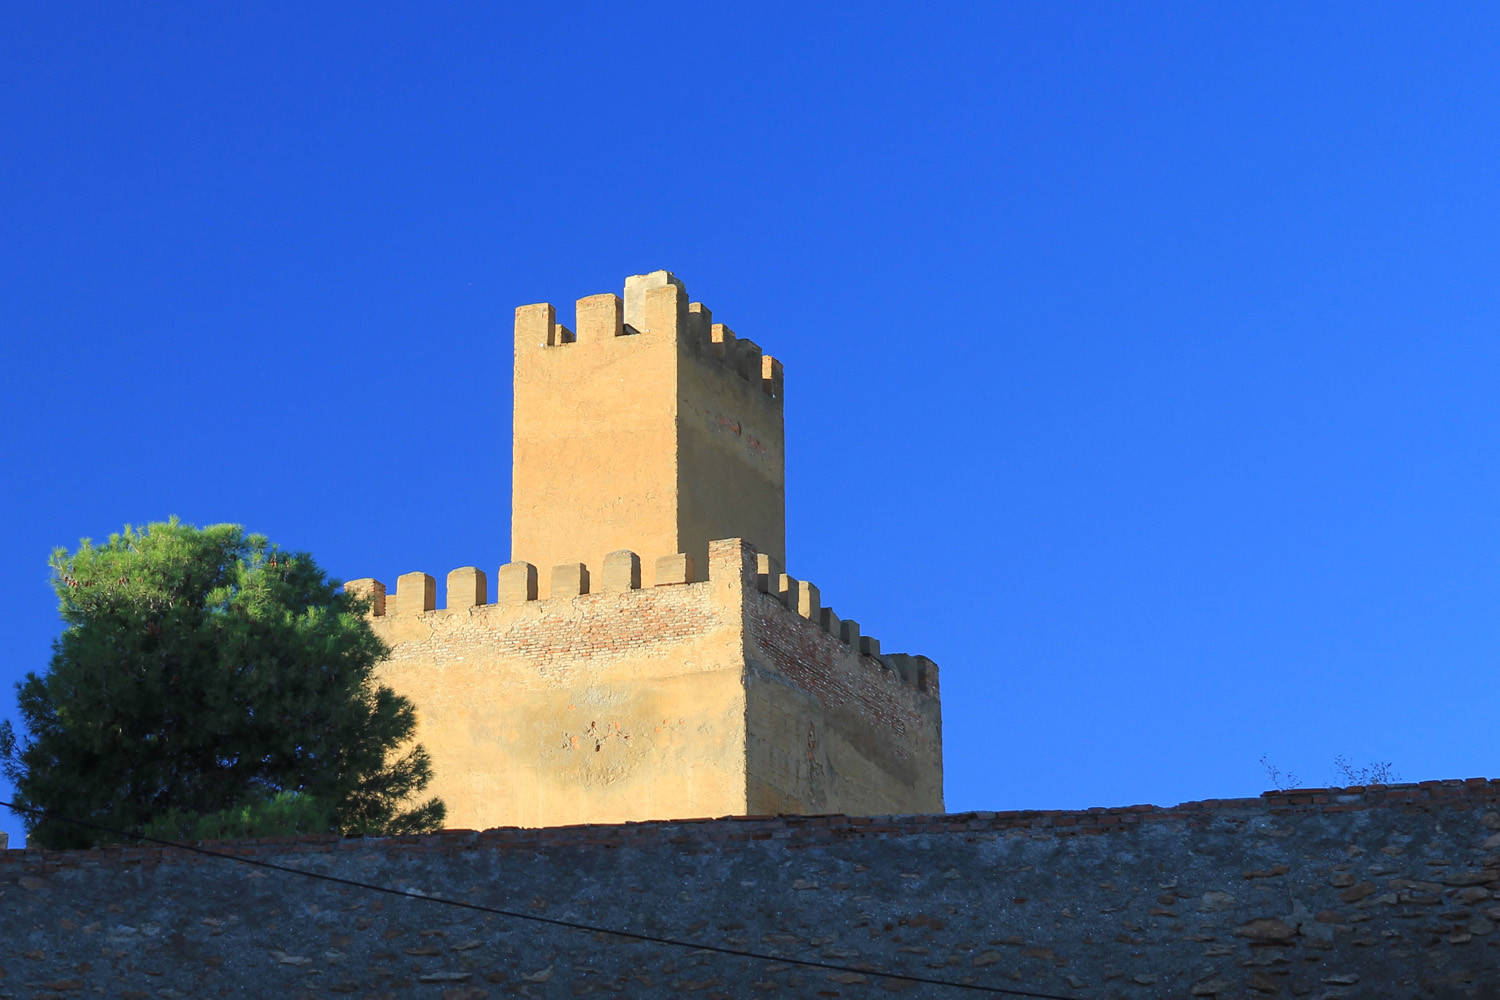 The Castle of Guadix